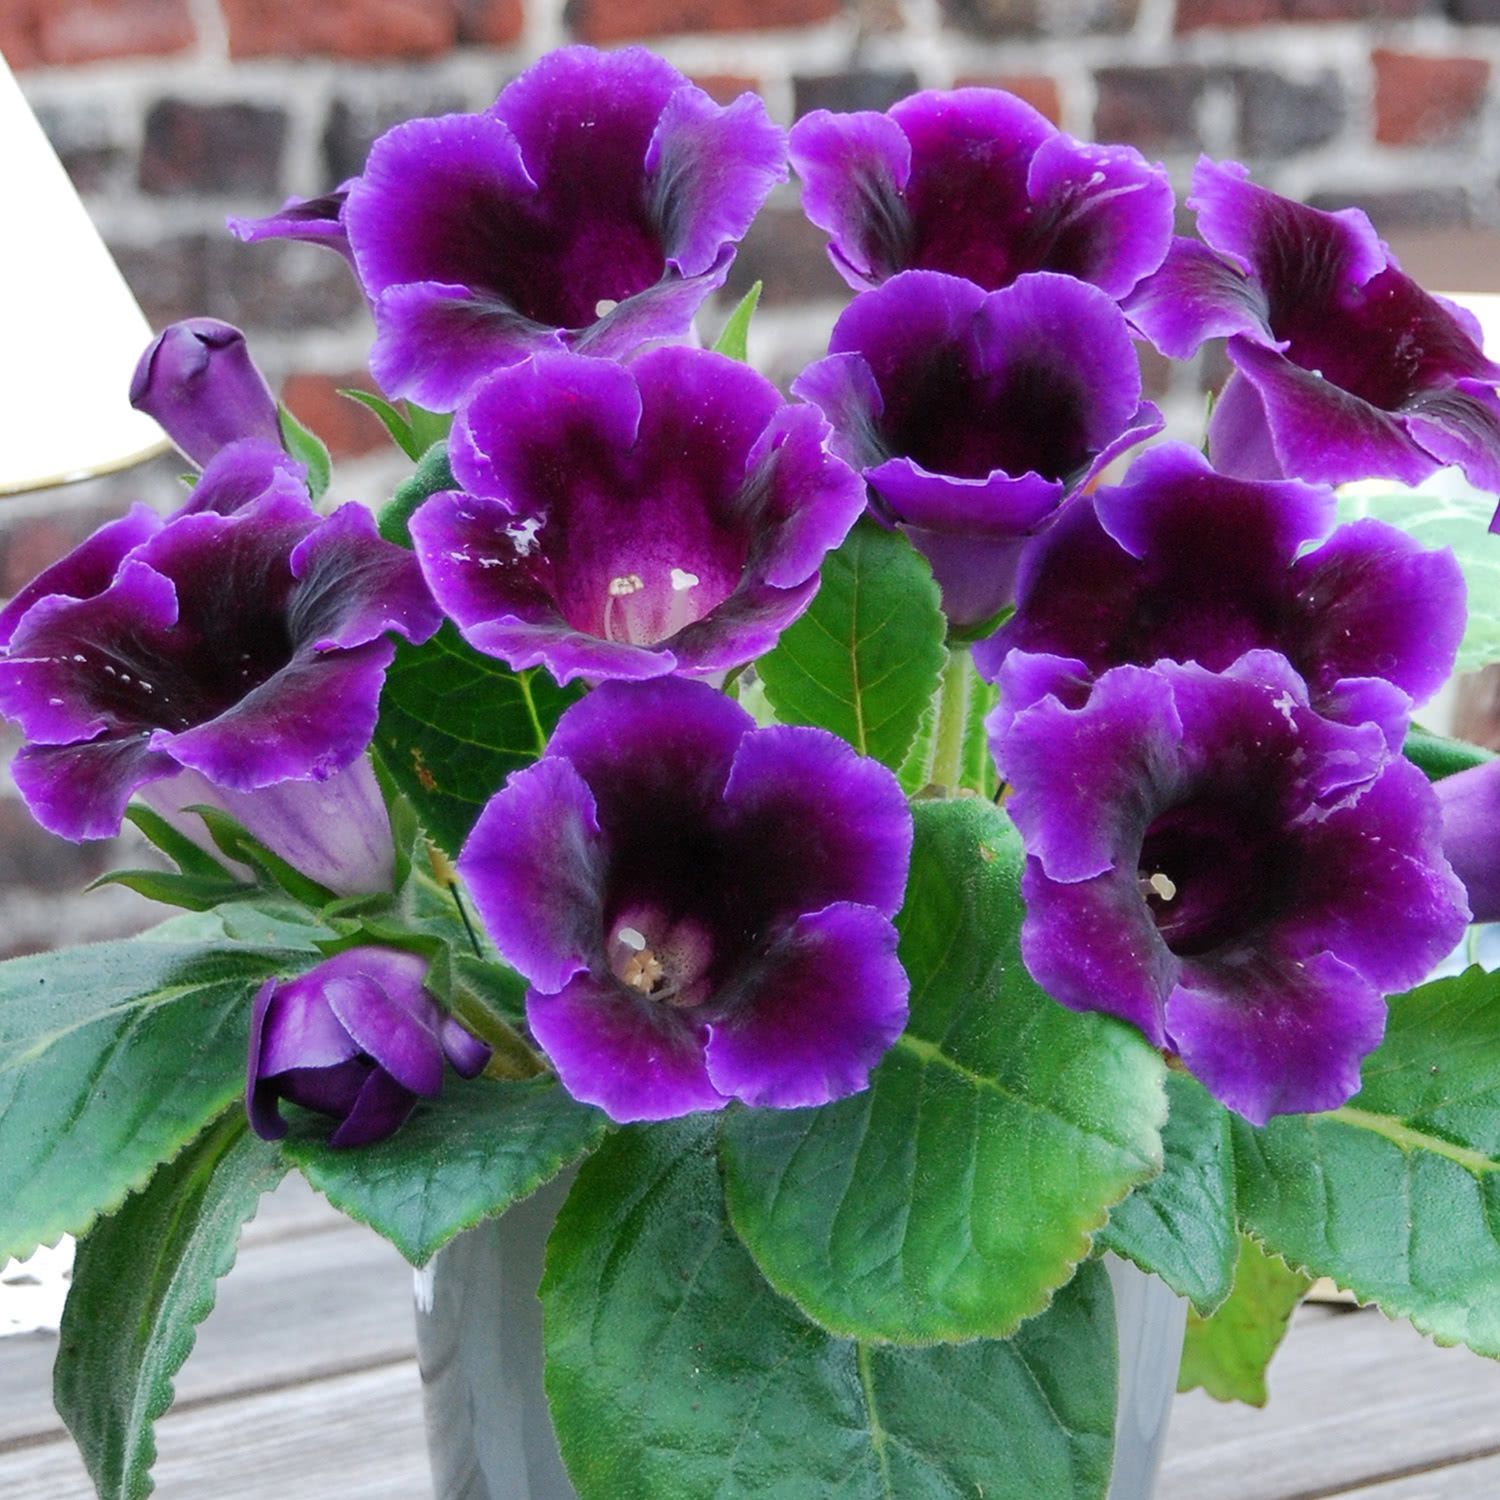 Gloxinia Outdoors  Florissa  Flowers Roses Fruits and Veggies